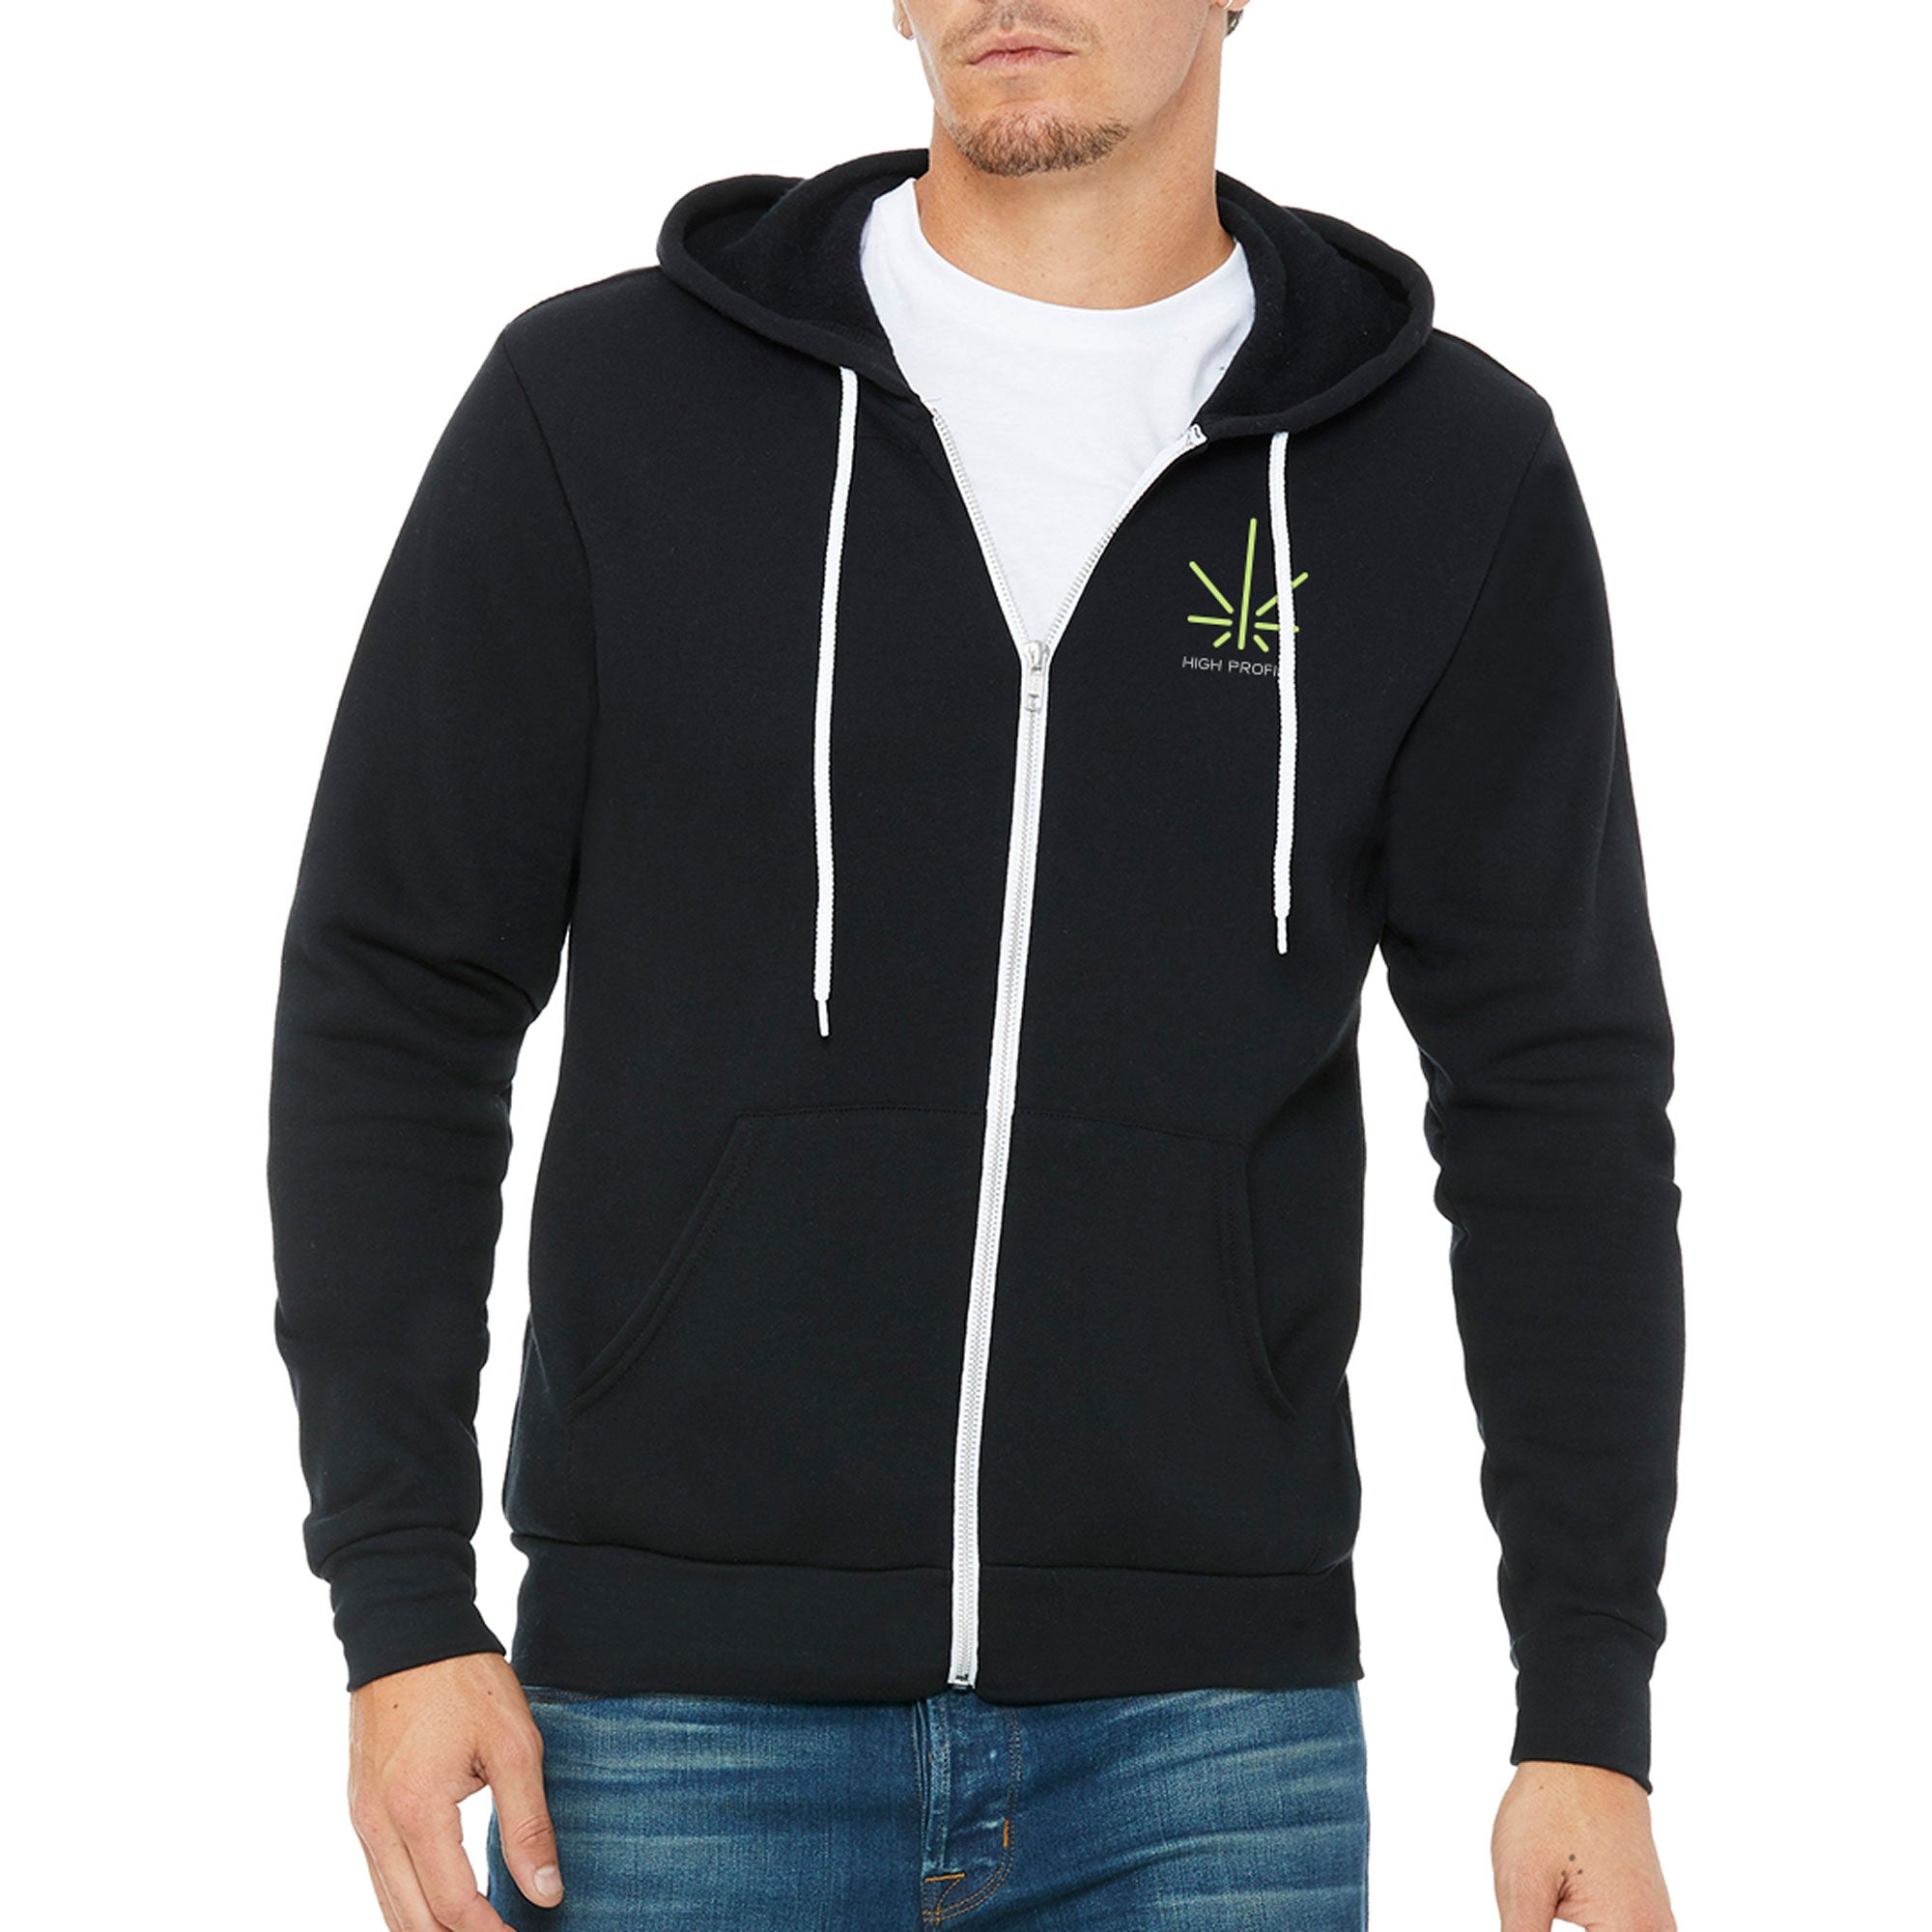 High Profile Icon Zip - Black